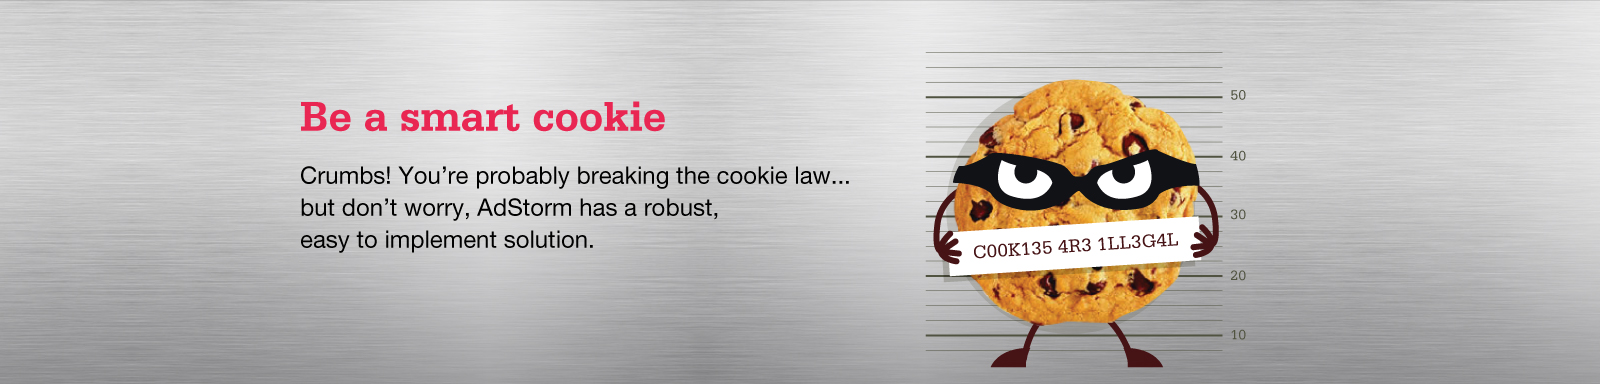 European Cookie Law